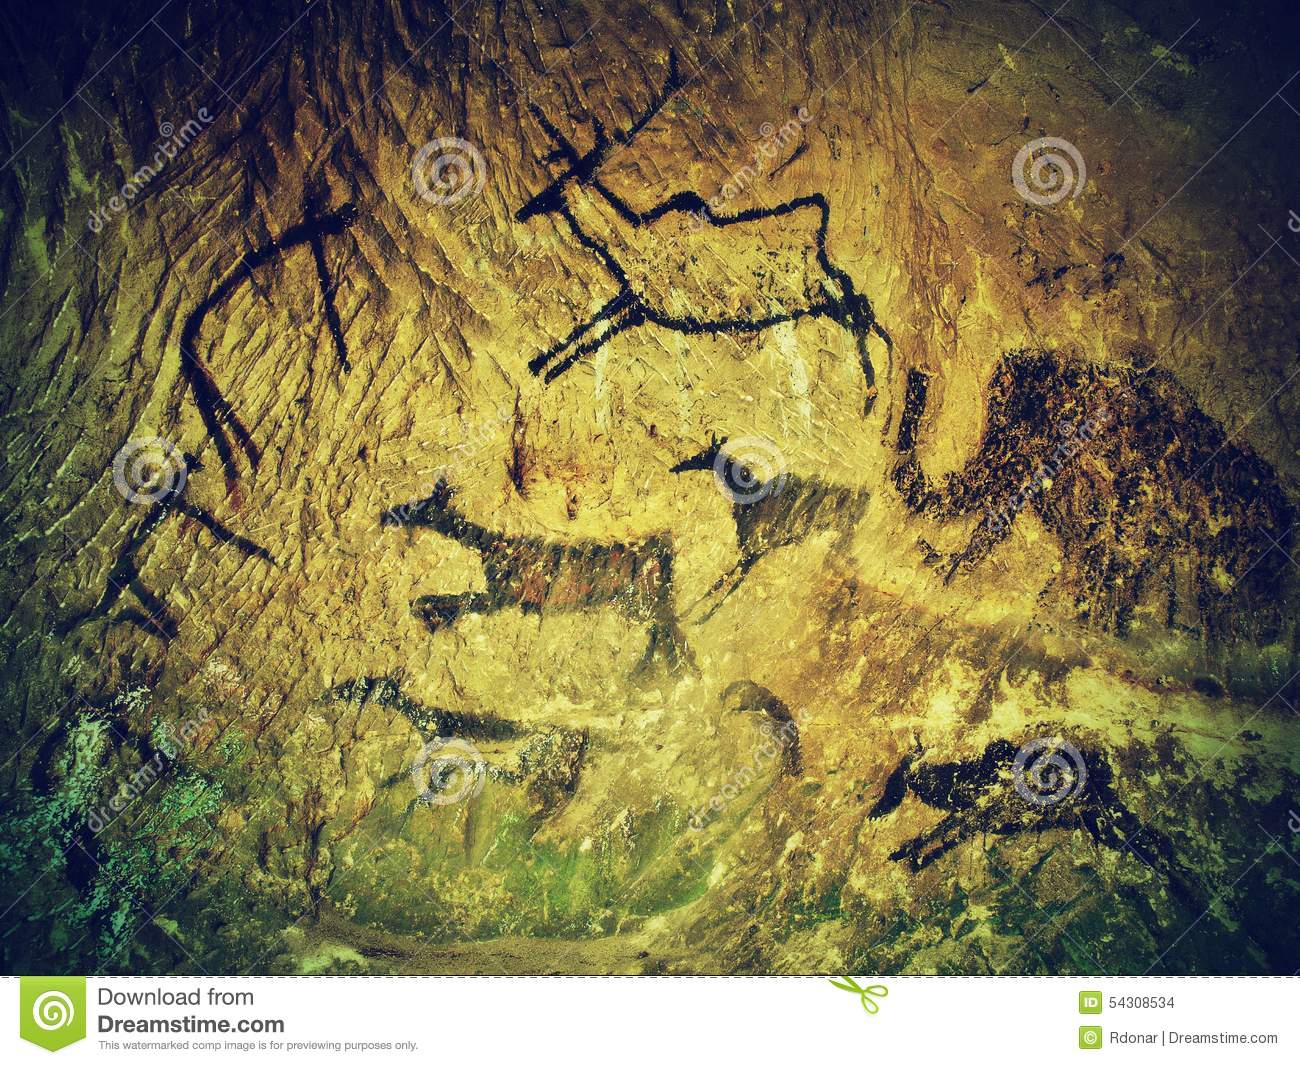 Abstract Children Art In Sandstone Cave. Black Carbon Paint Of Human ...